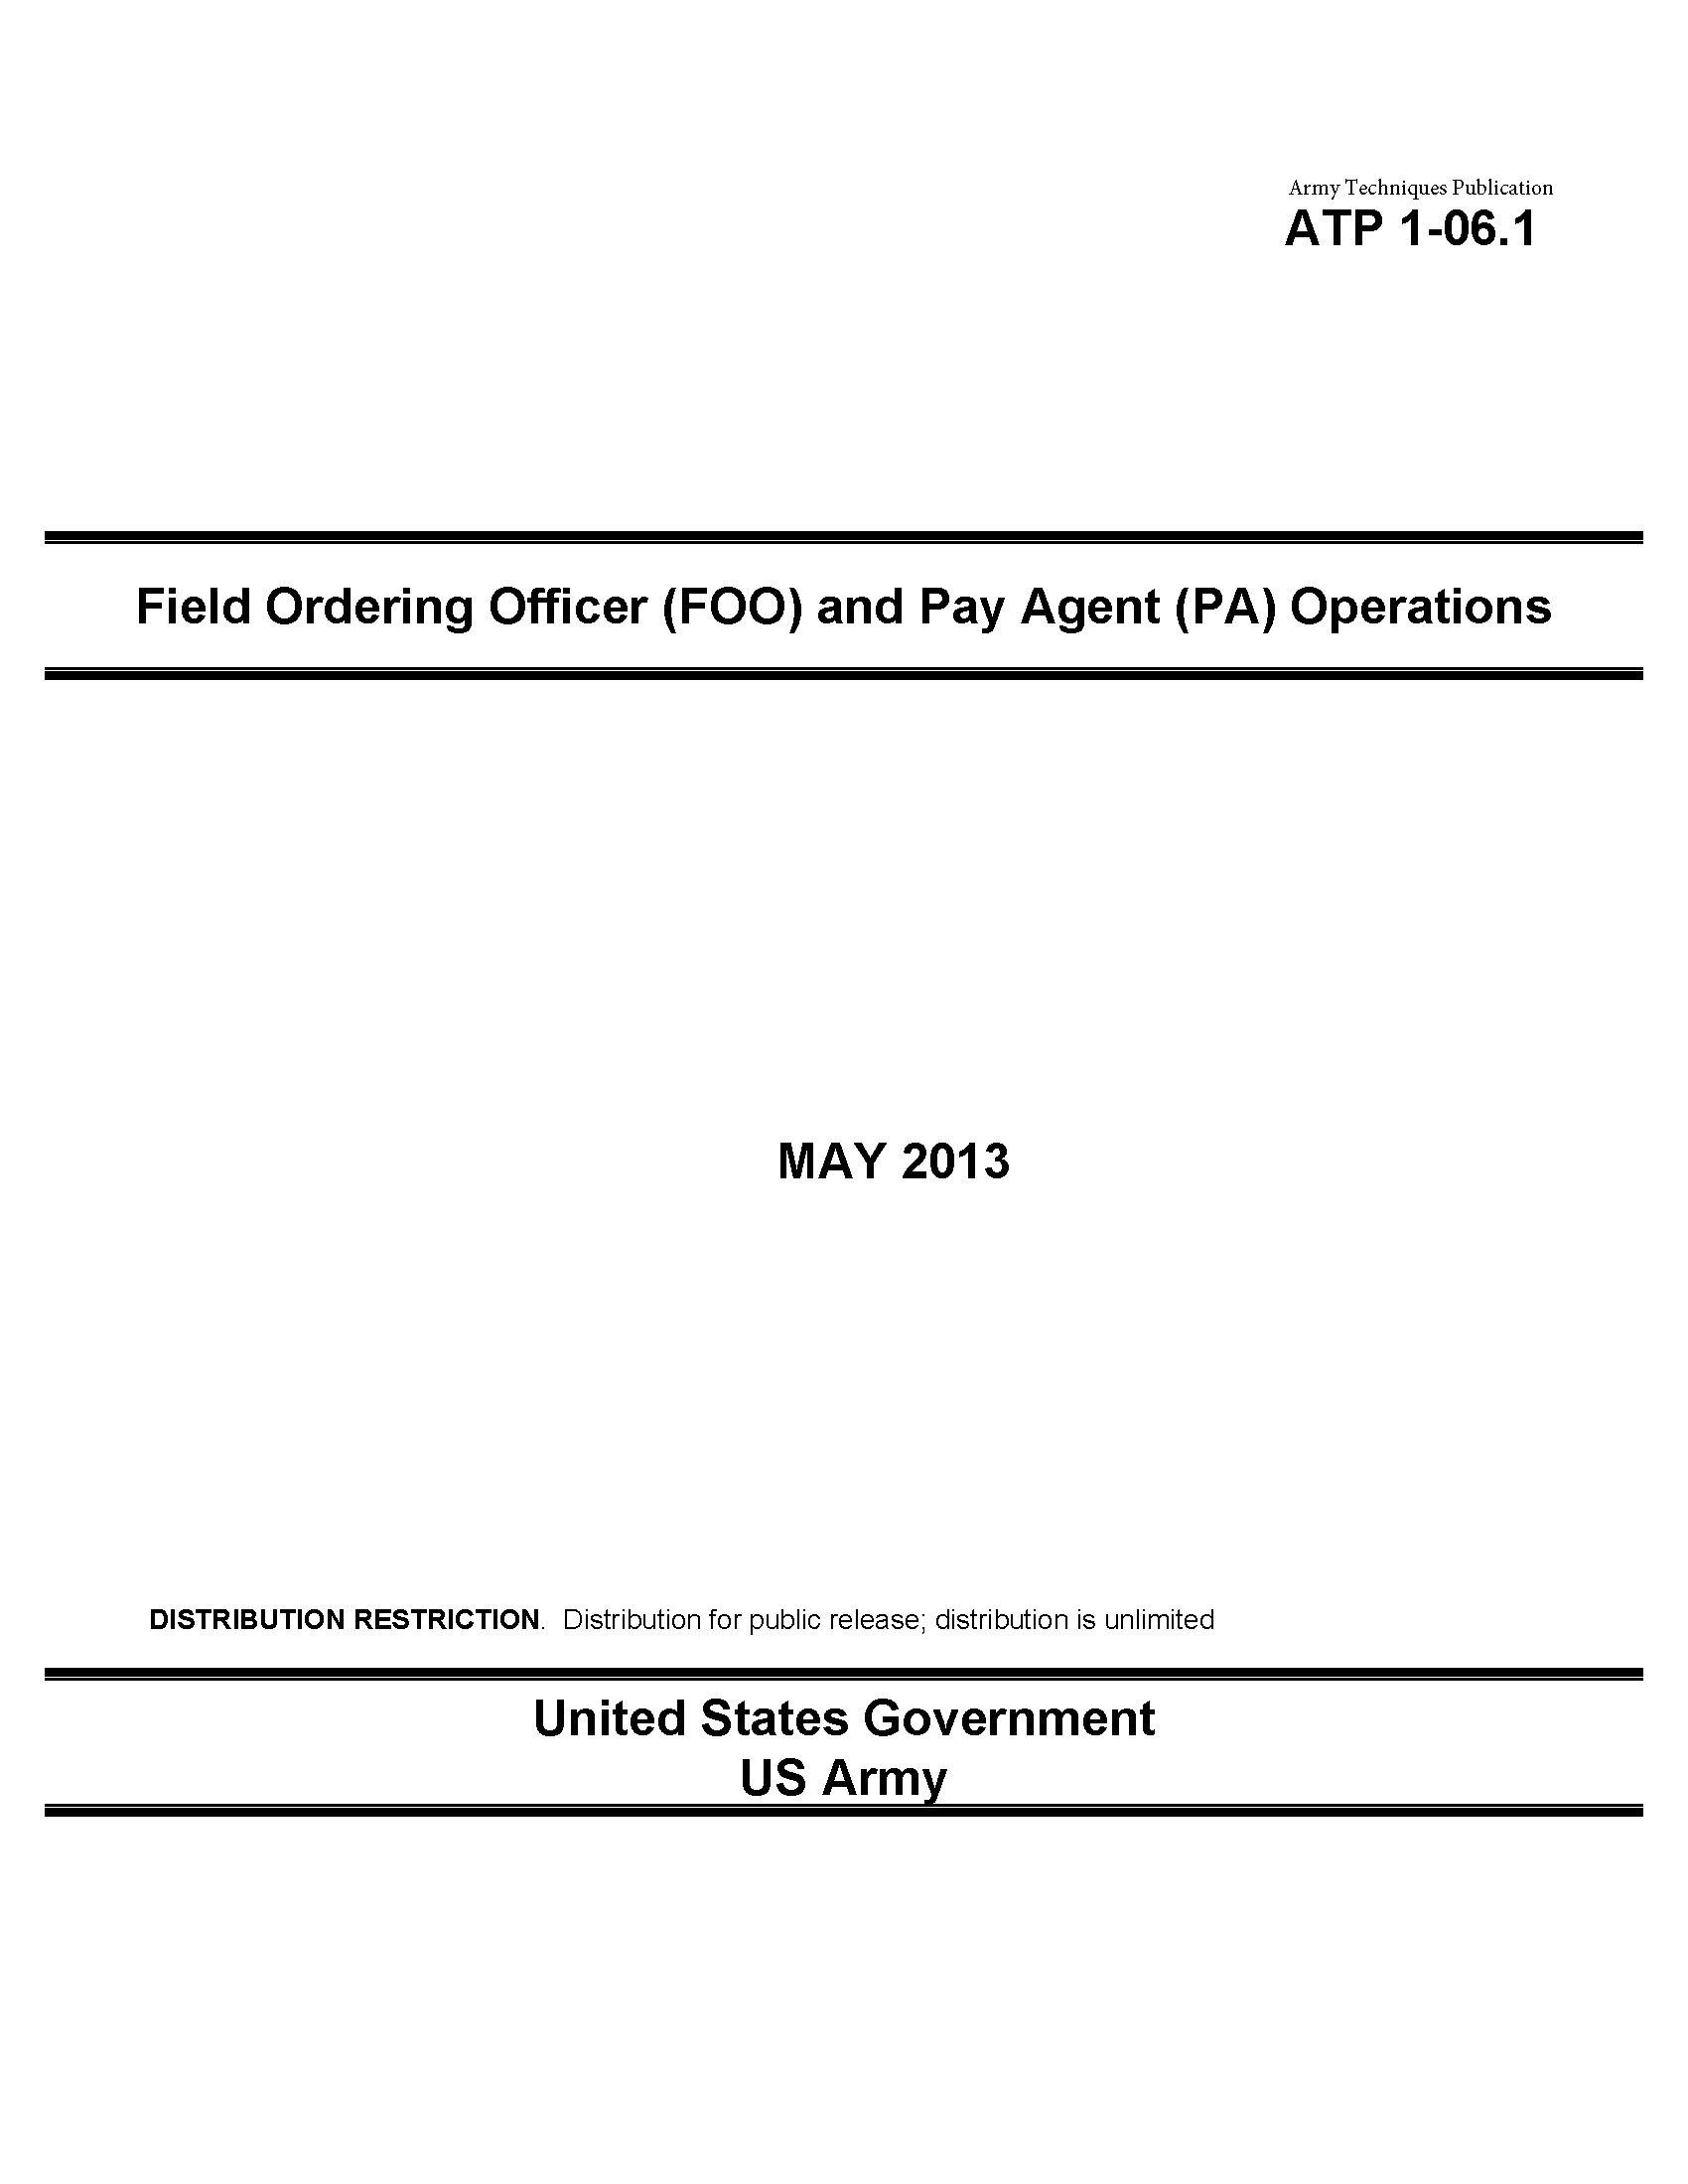 Army Techniques Publication ATP 1-06.1 Field Ordering Officer (FOO) and Pay Agent (PA) Operations May 2013